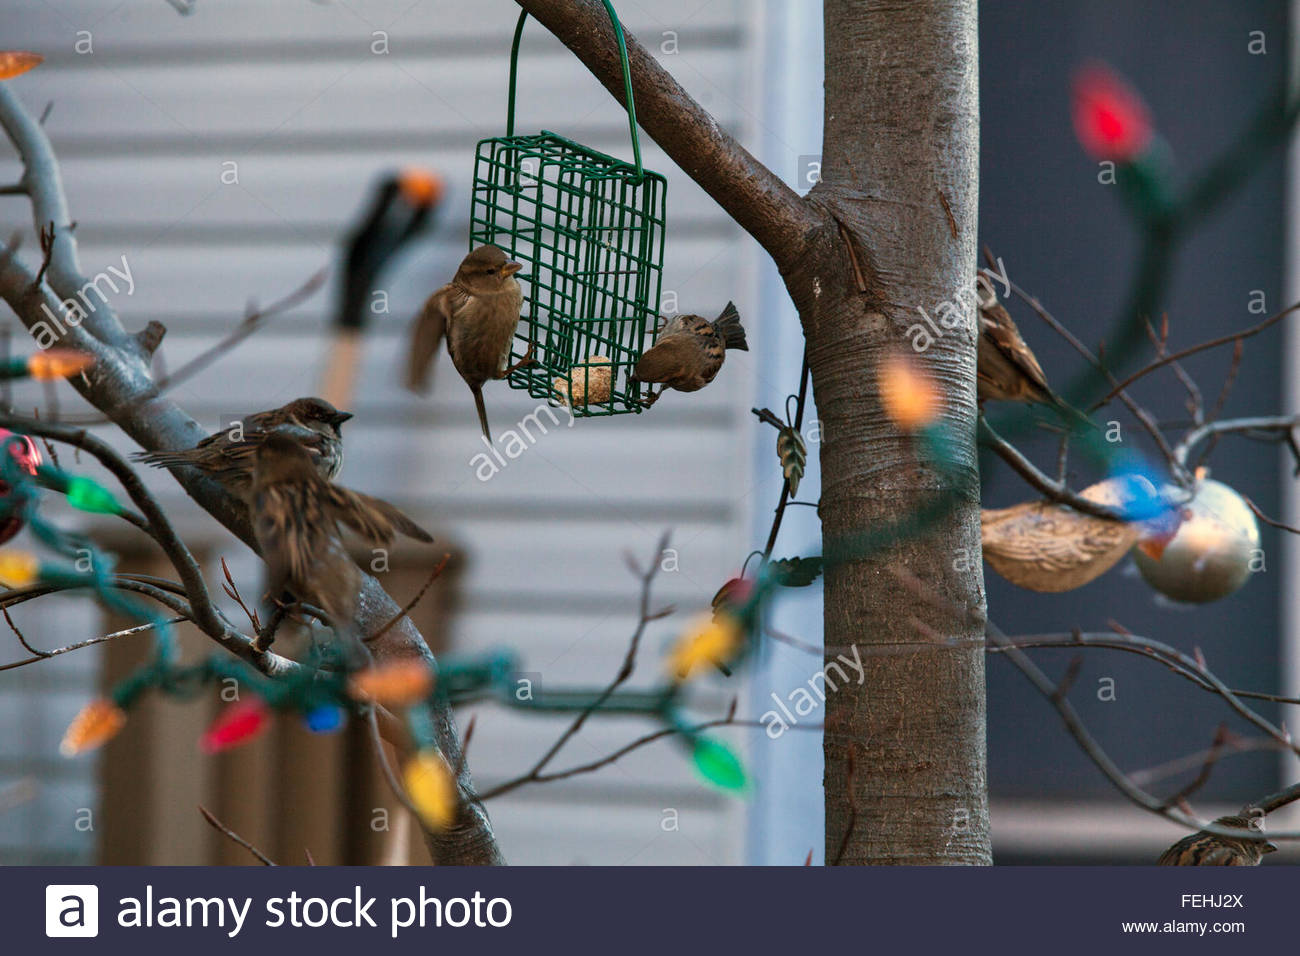 Suet bird feeder attracts sparrows and chickadees on Niagara St., Xmas decor still up in the tree, Toronto, Canada - Stock Image